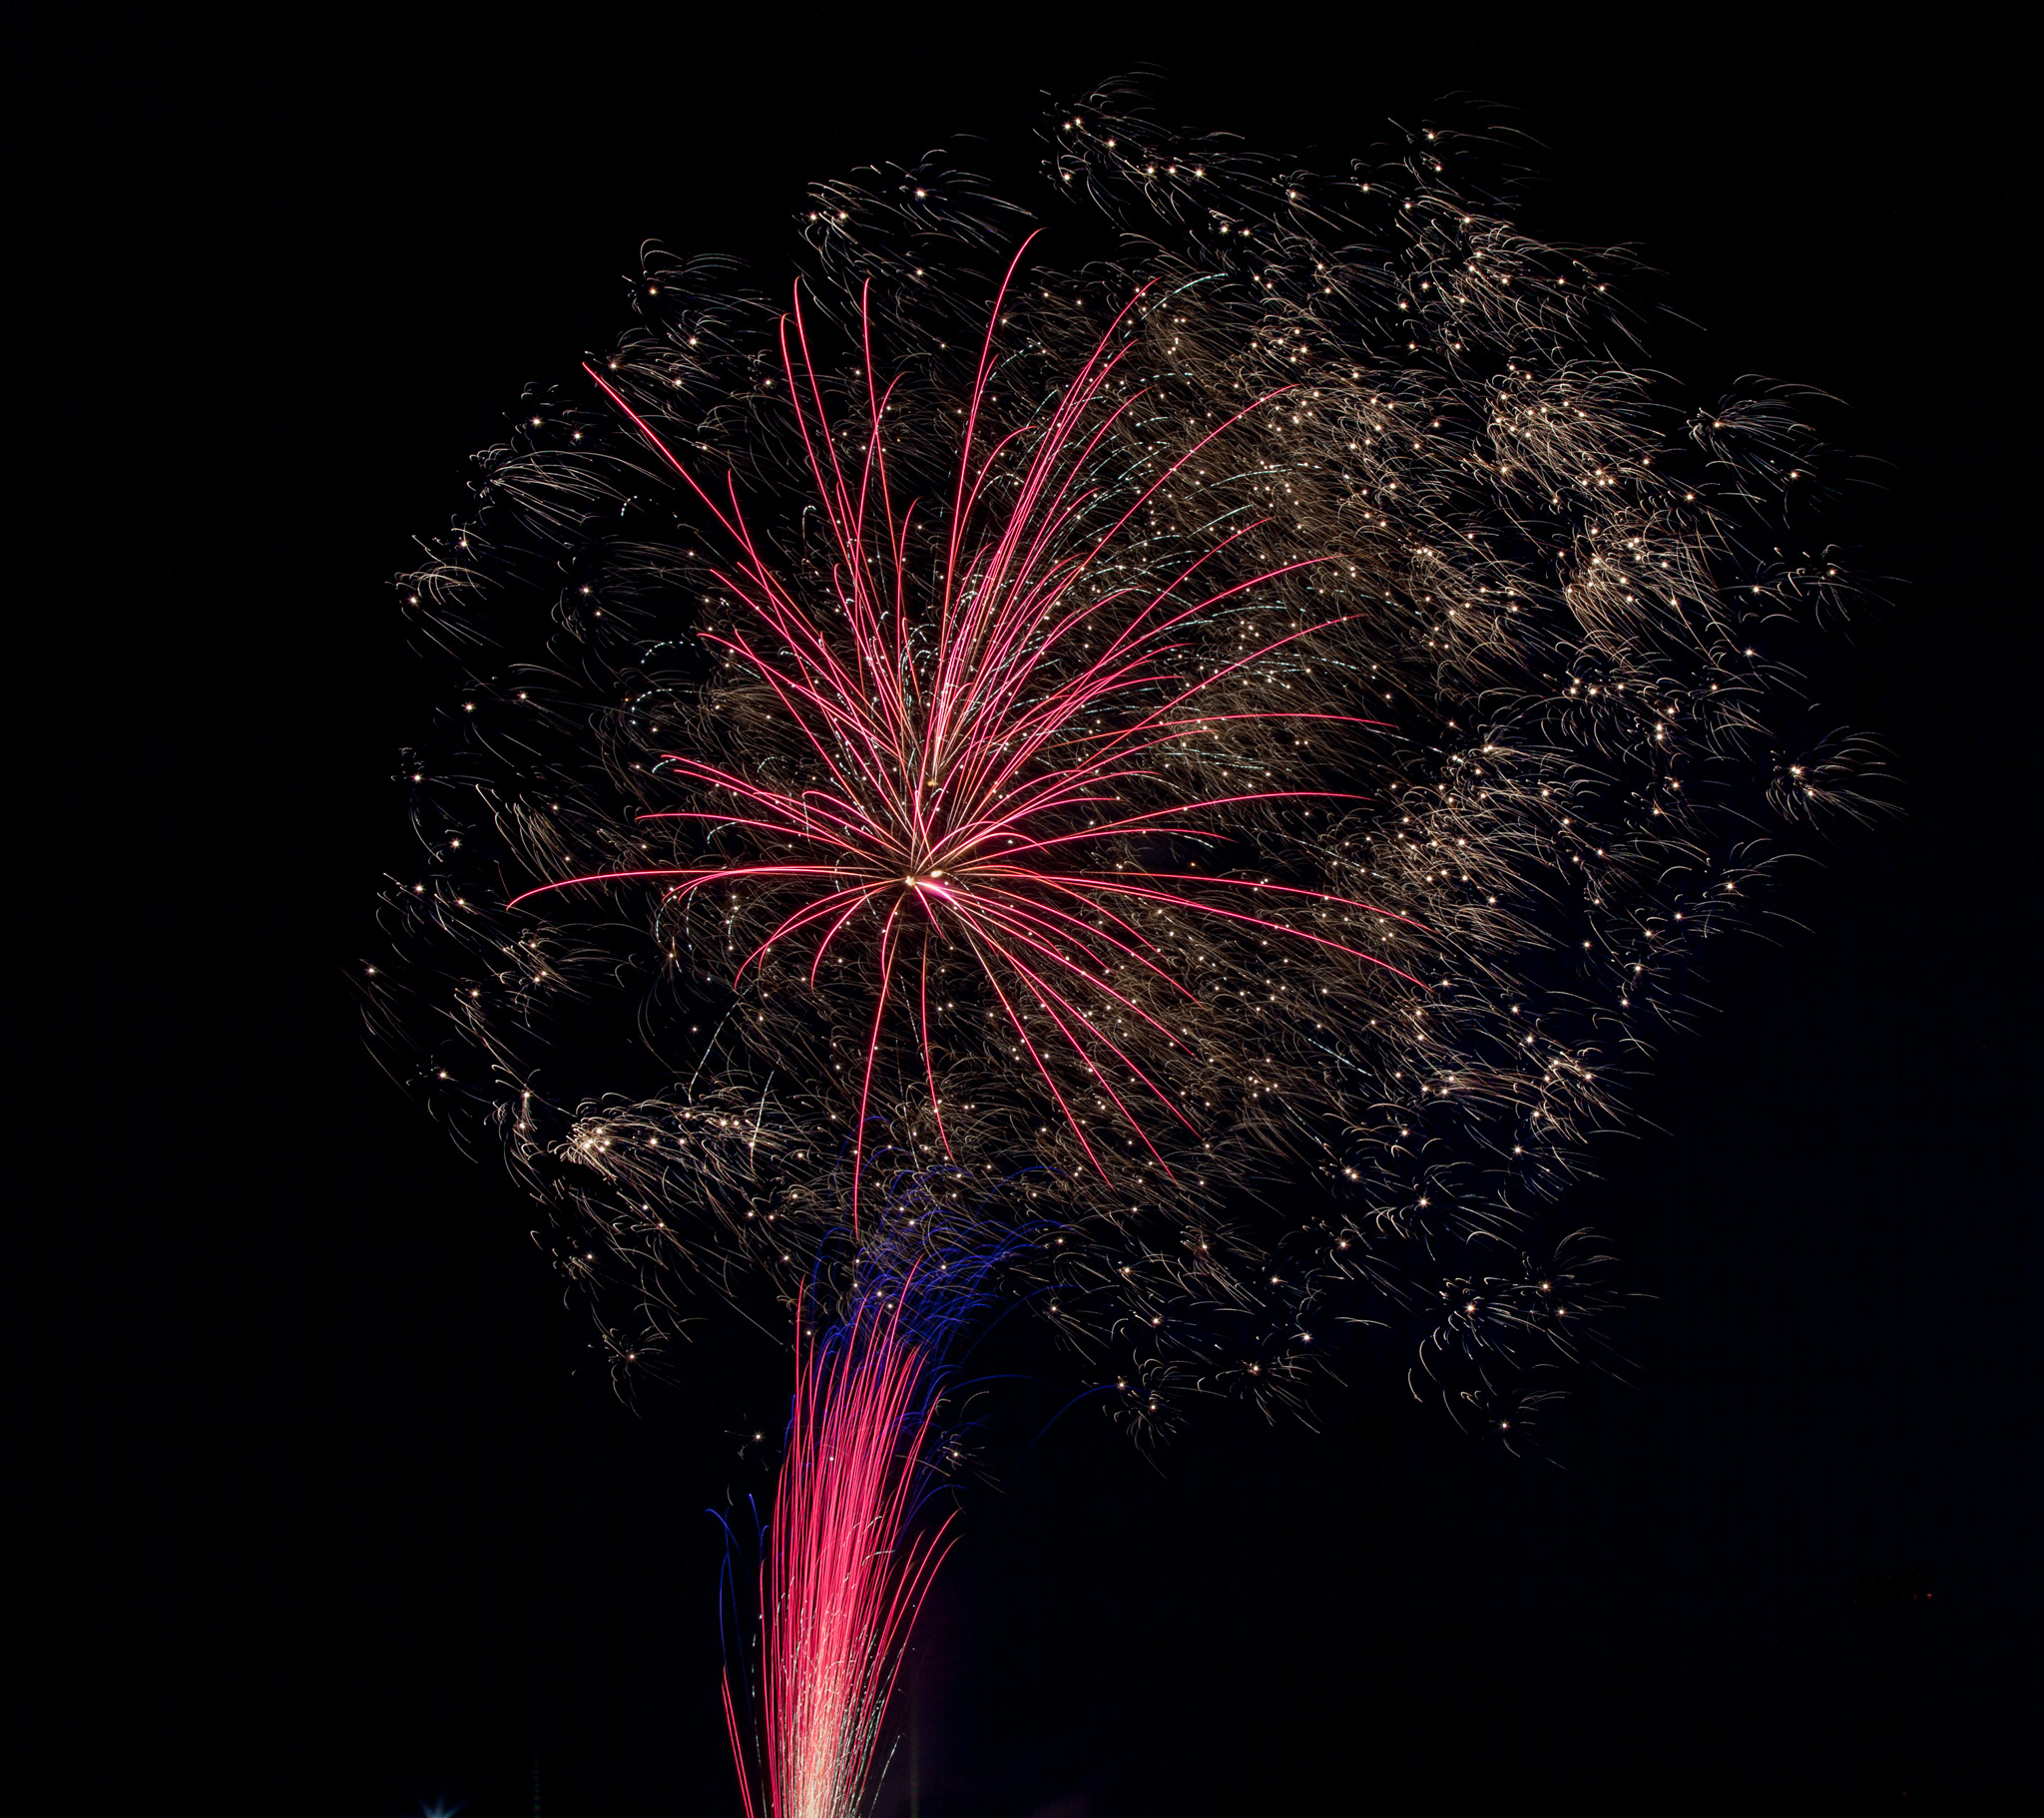 Fireworks from the Past